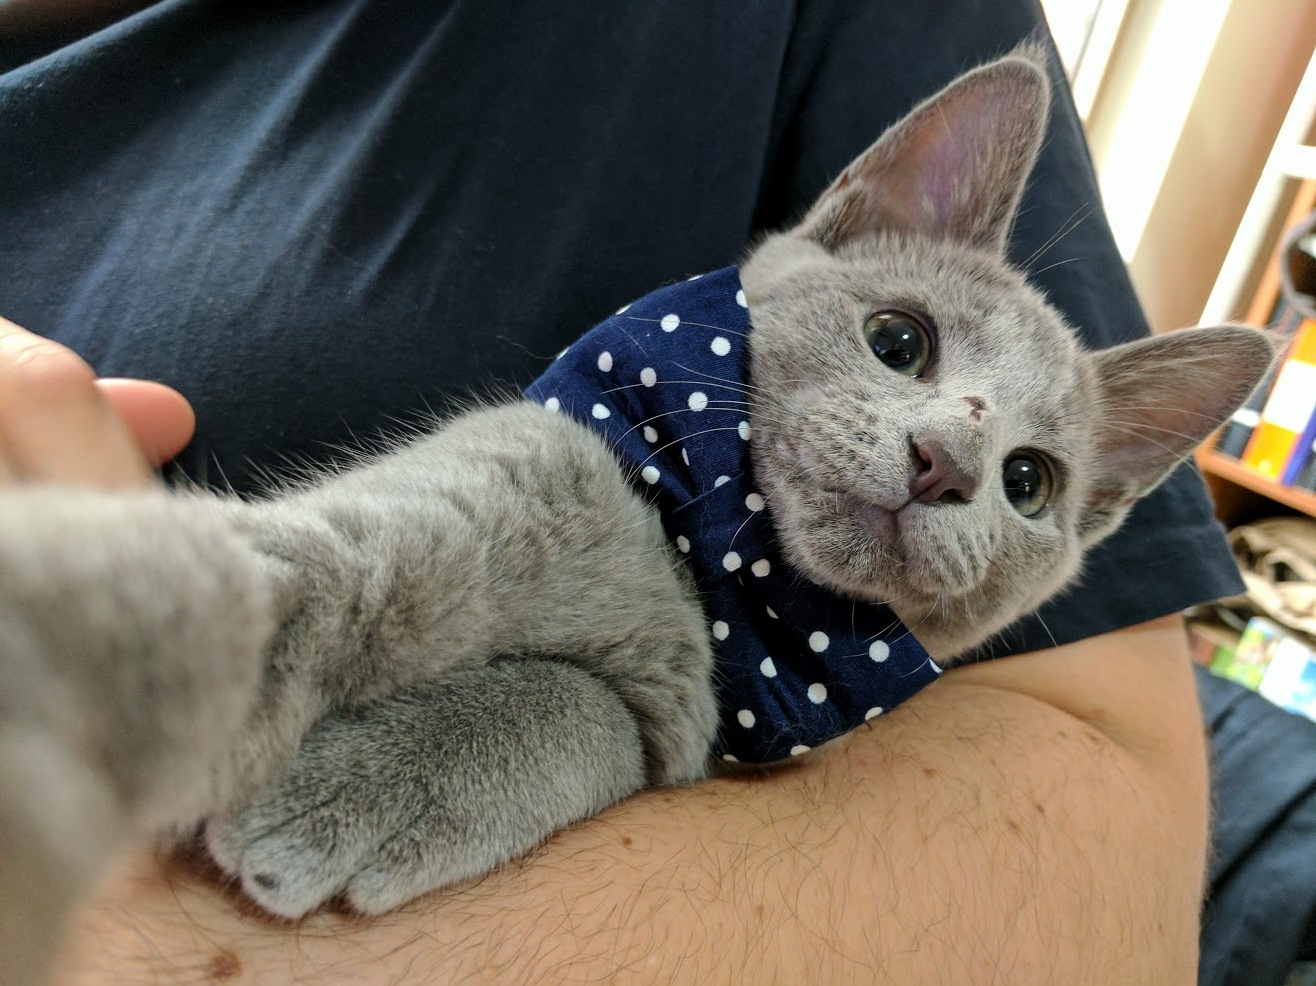 My kitten all dressed up for a selfie